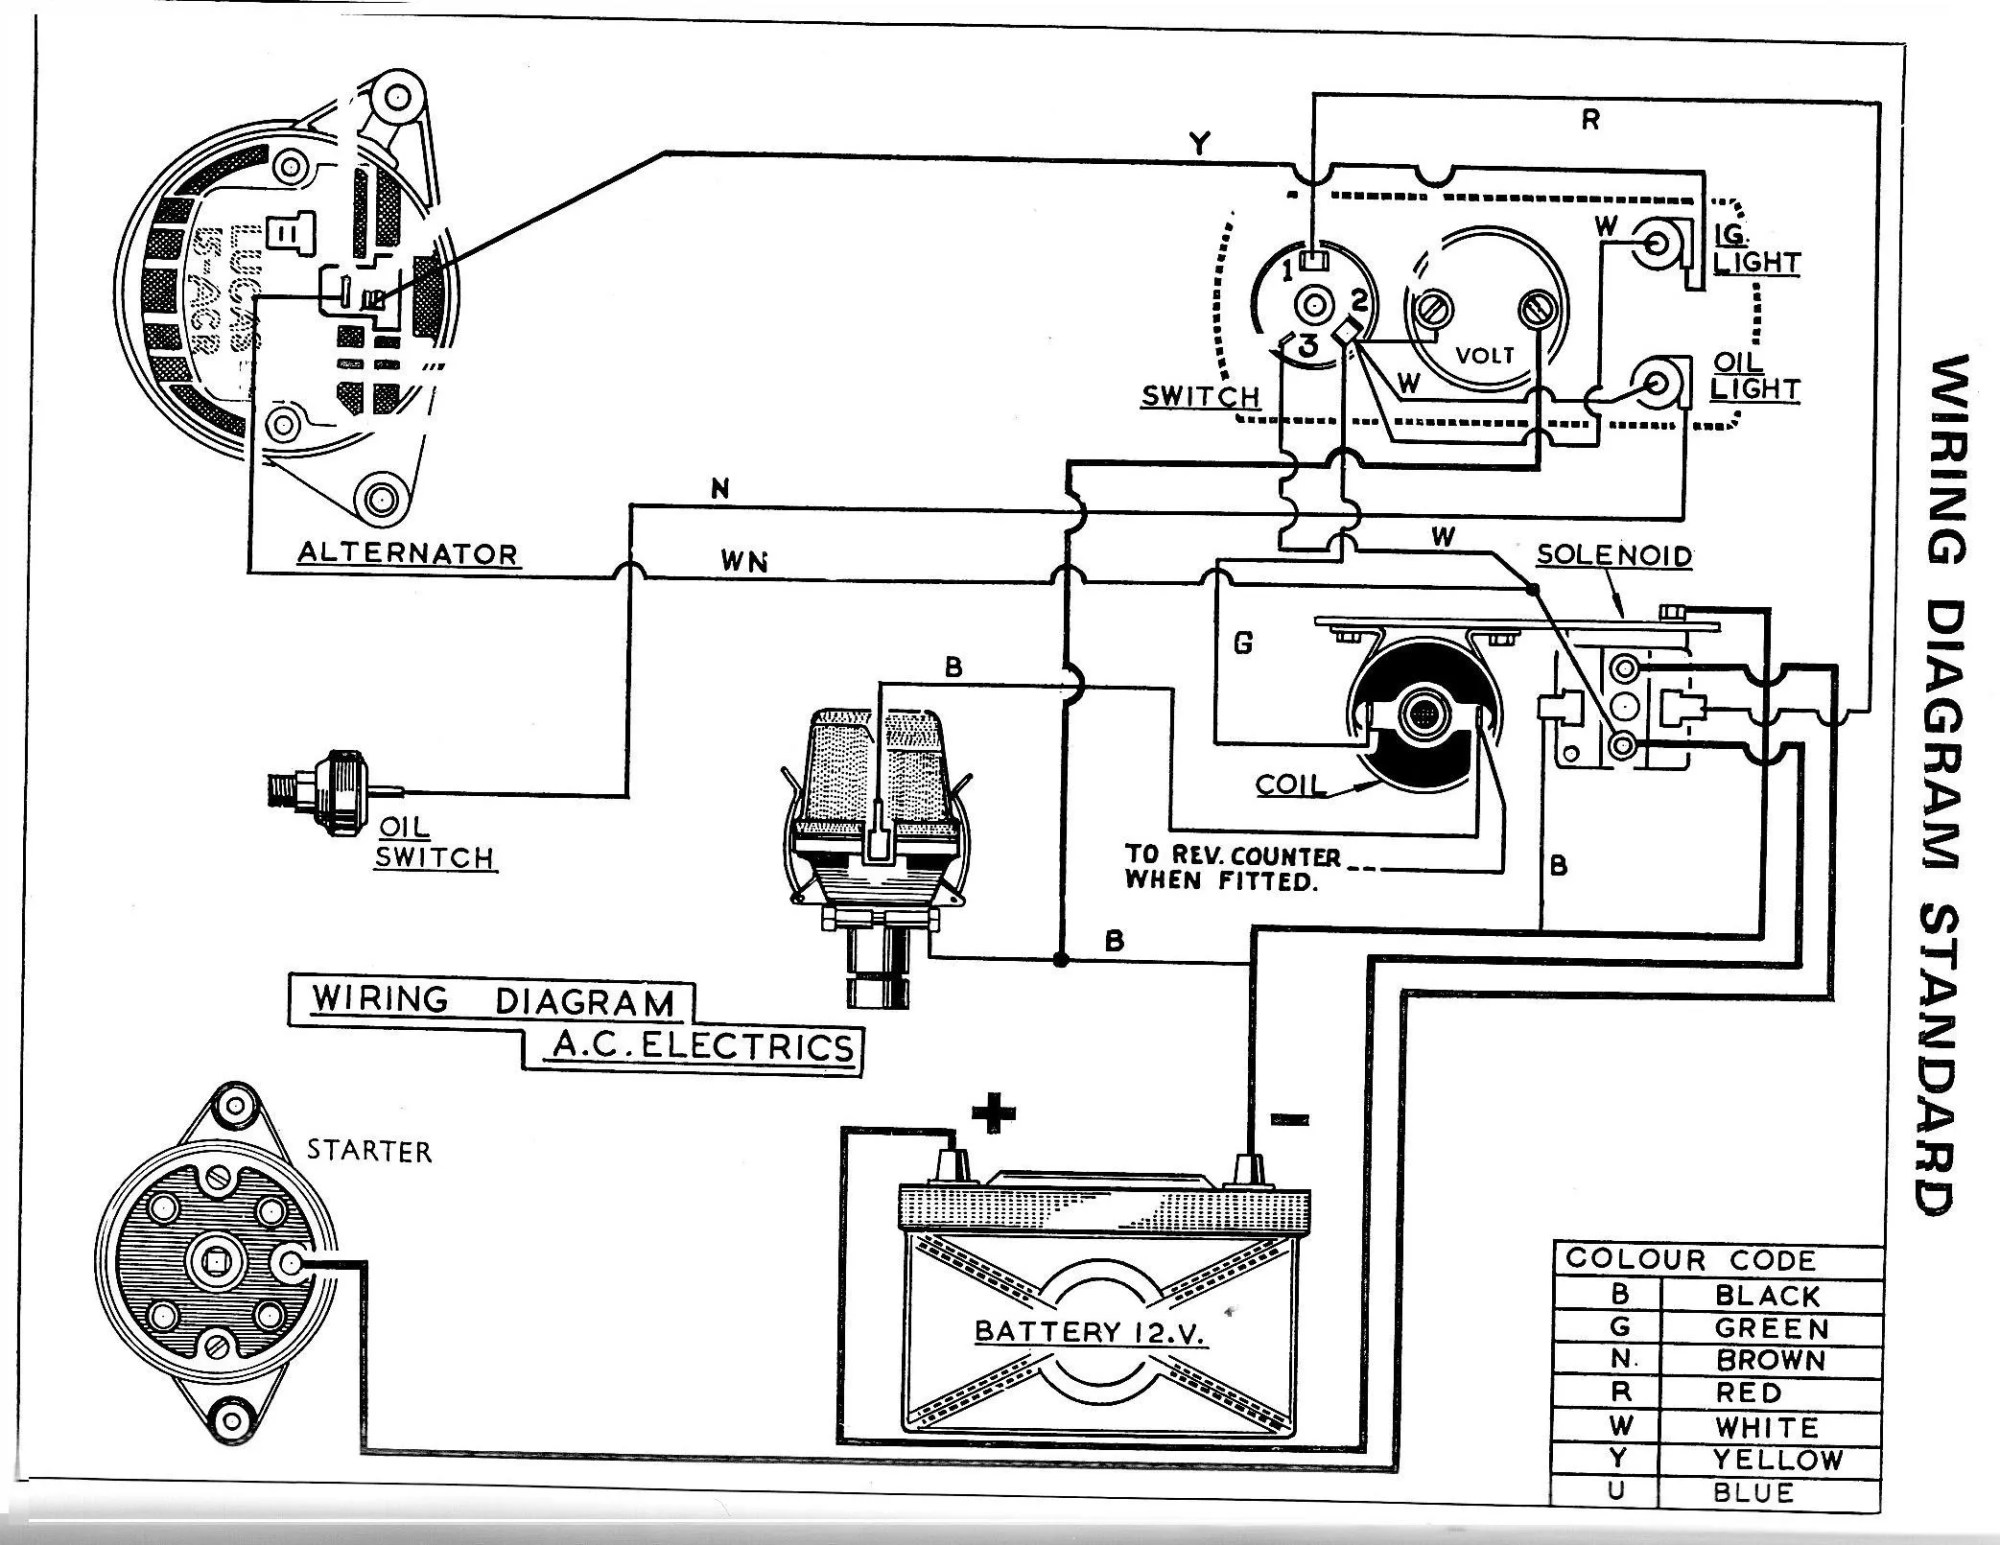 hight resolution of long tractor ignition switch wiring diagram wiring diagram viewlong tractor ignition switch wiring diagram 6